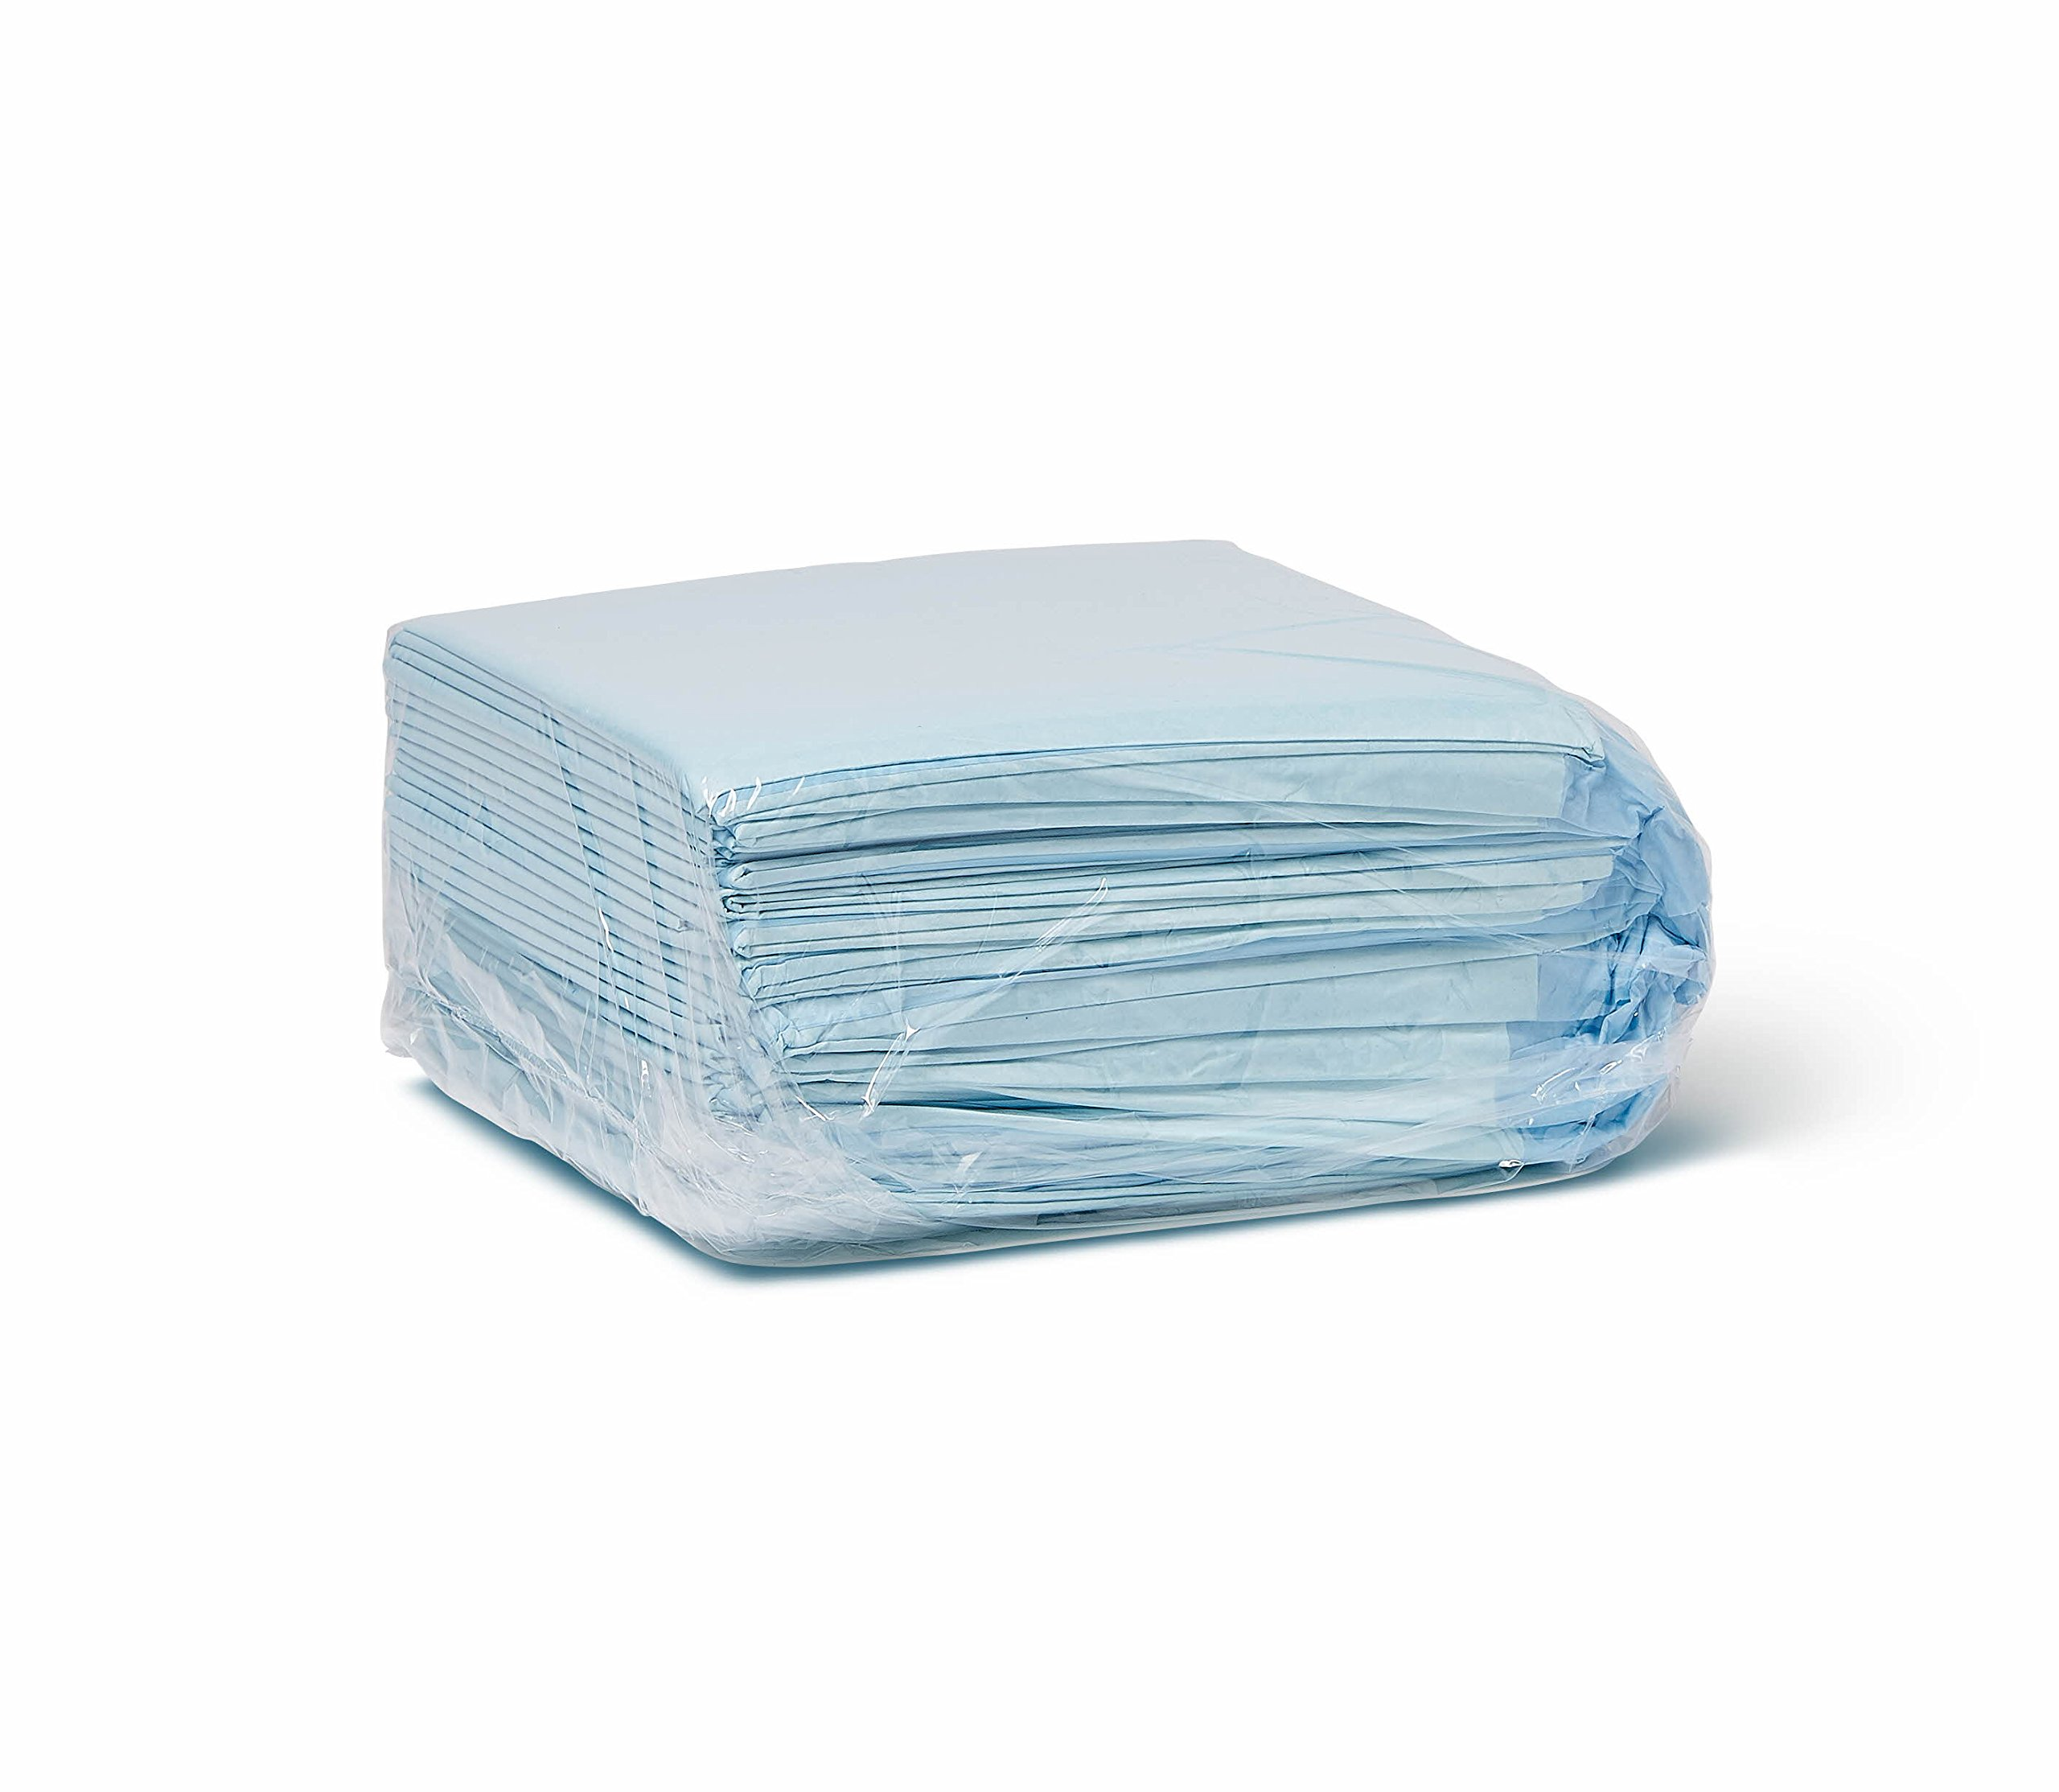 Medline Quilted Basic Disposable Blue Underpad, 23'' x 36'' for Incontinence, Furniture Protection or Pet Pads (Pack of 150) by Medline (Image #3)